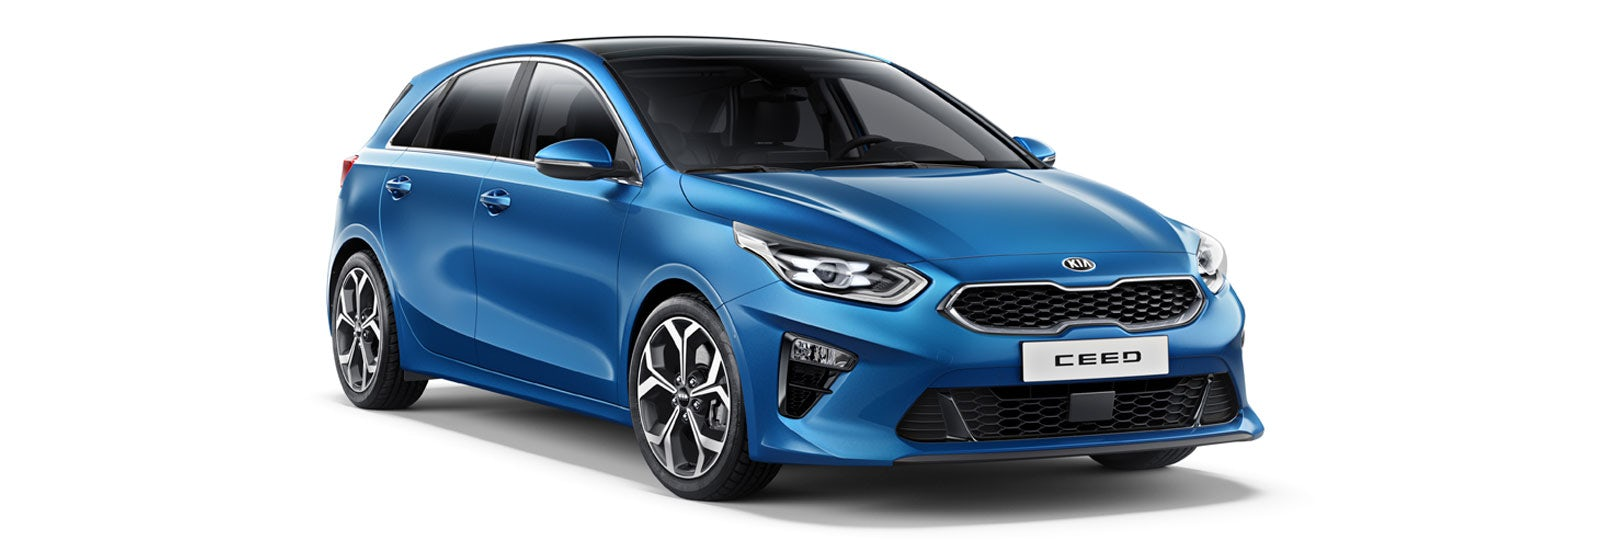 2019 kia ceed price specs and release date carwow. Black Bedroom Furniture Sets. Home Design Ideas